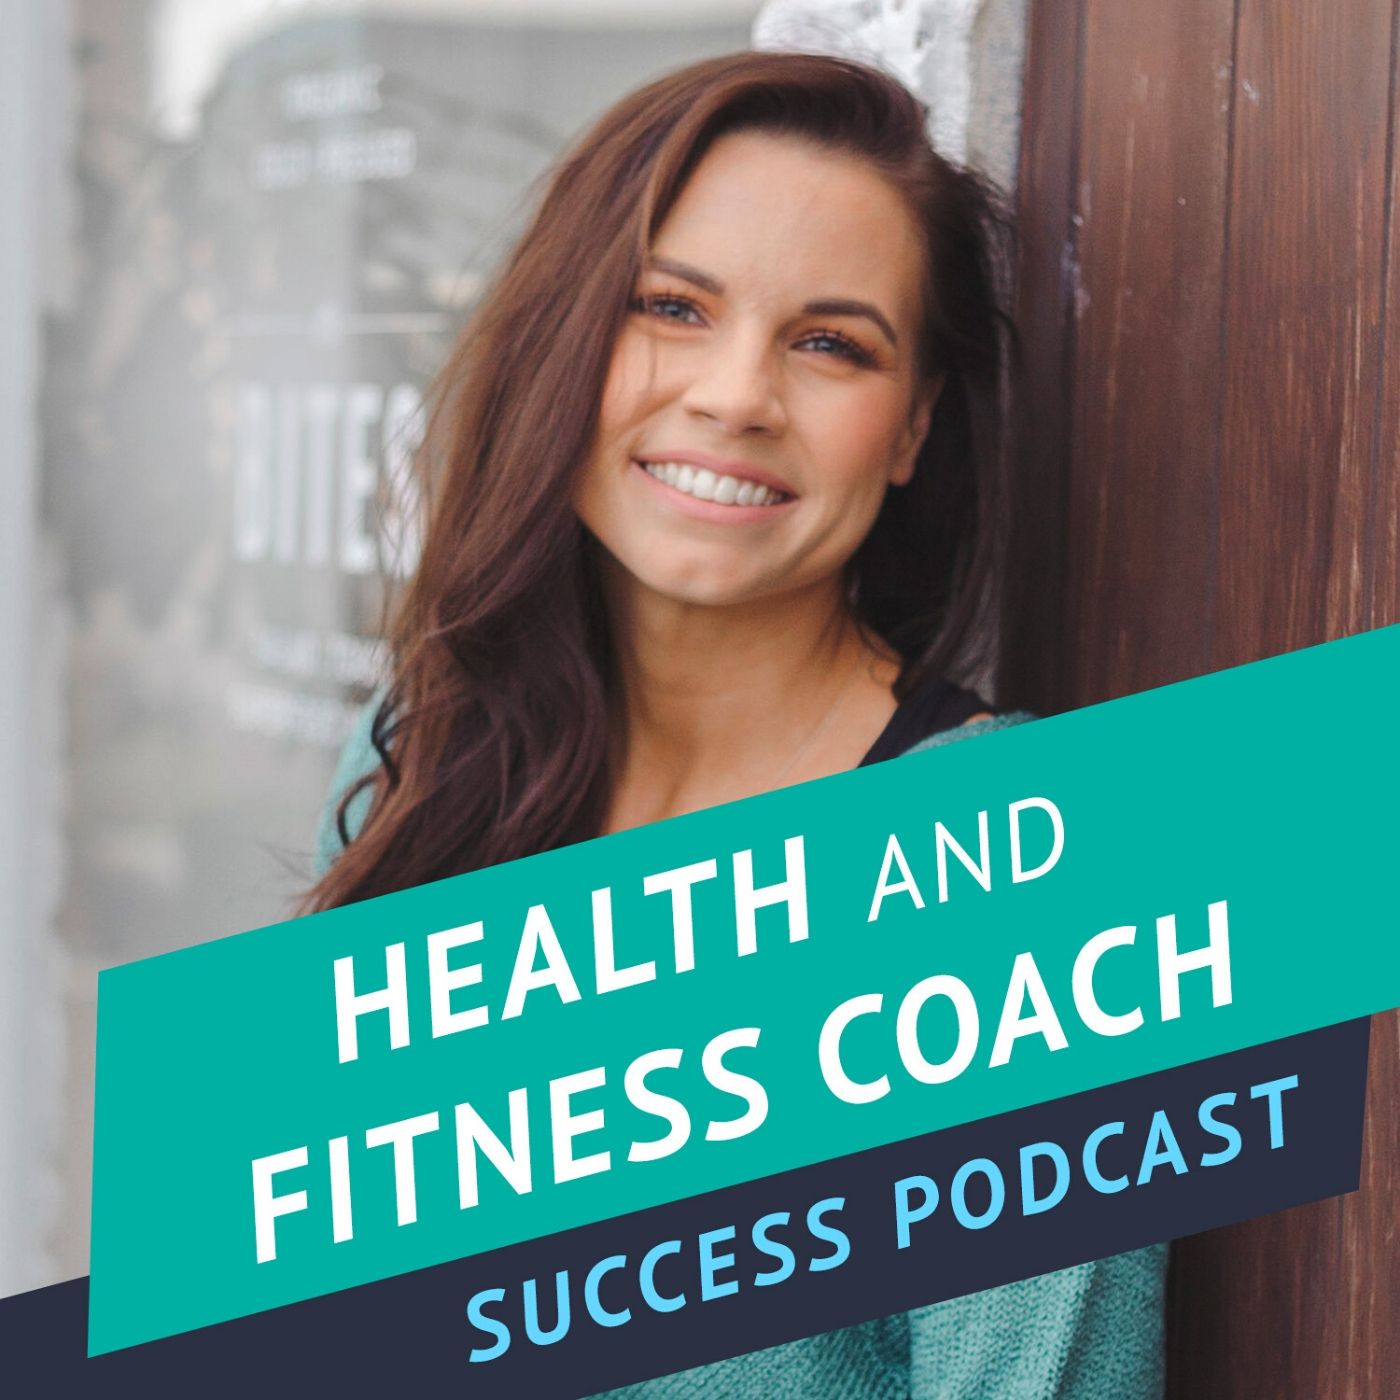 Health and Fitness Coach Success Podcast show art